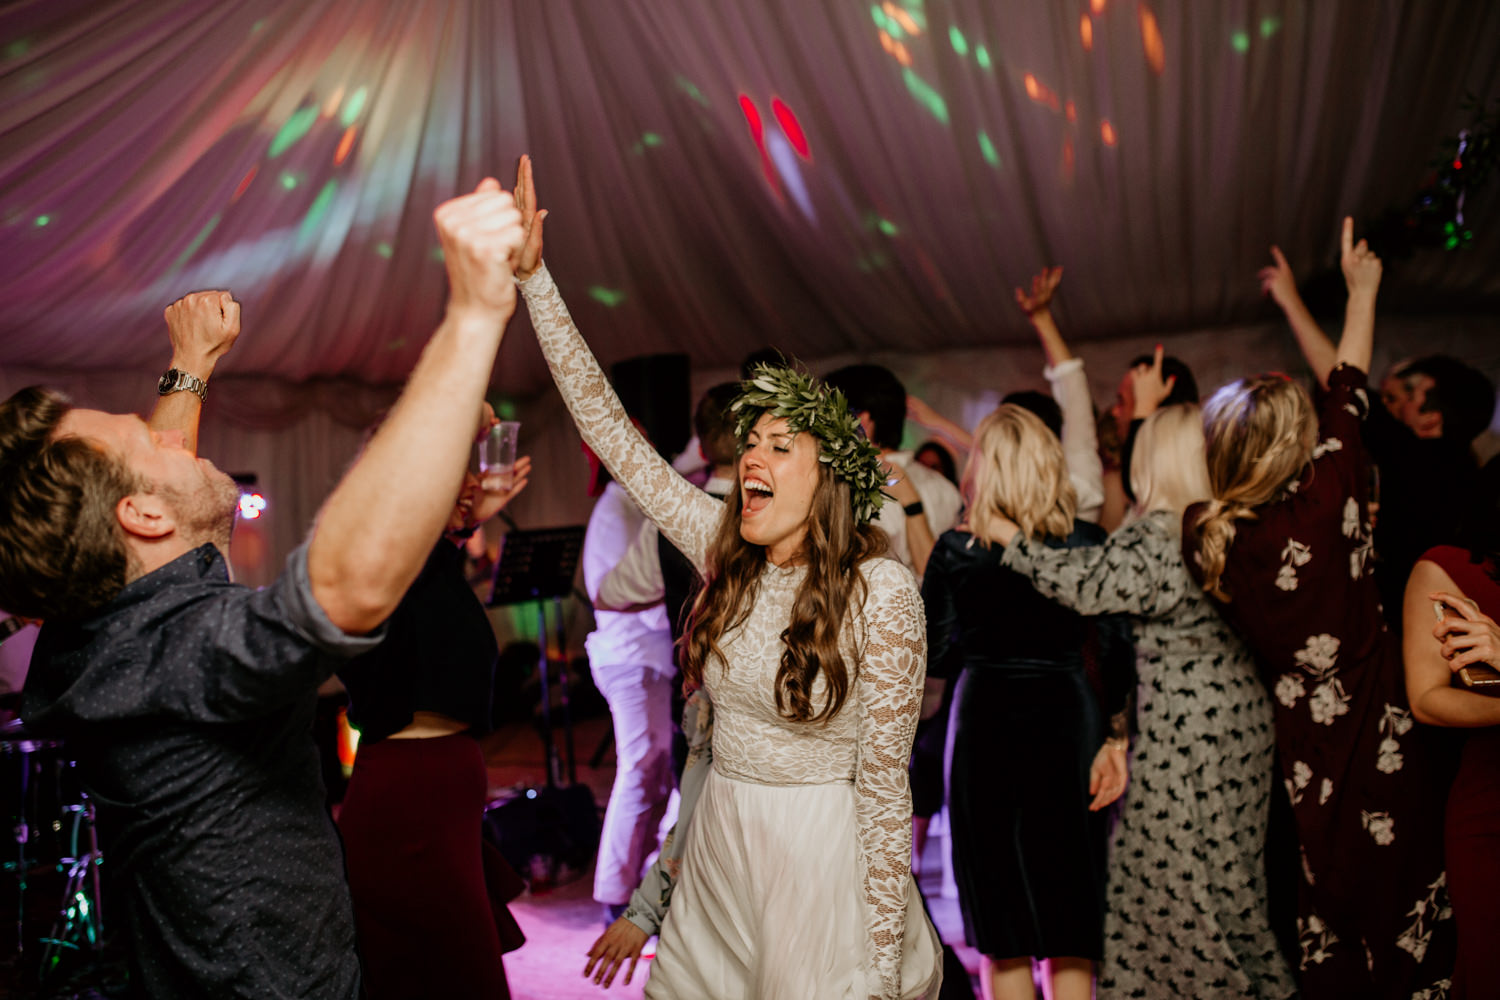 bride dancing with guests during the wedding party at Harvest Moon Scotland